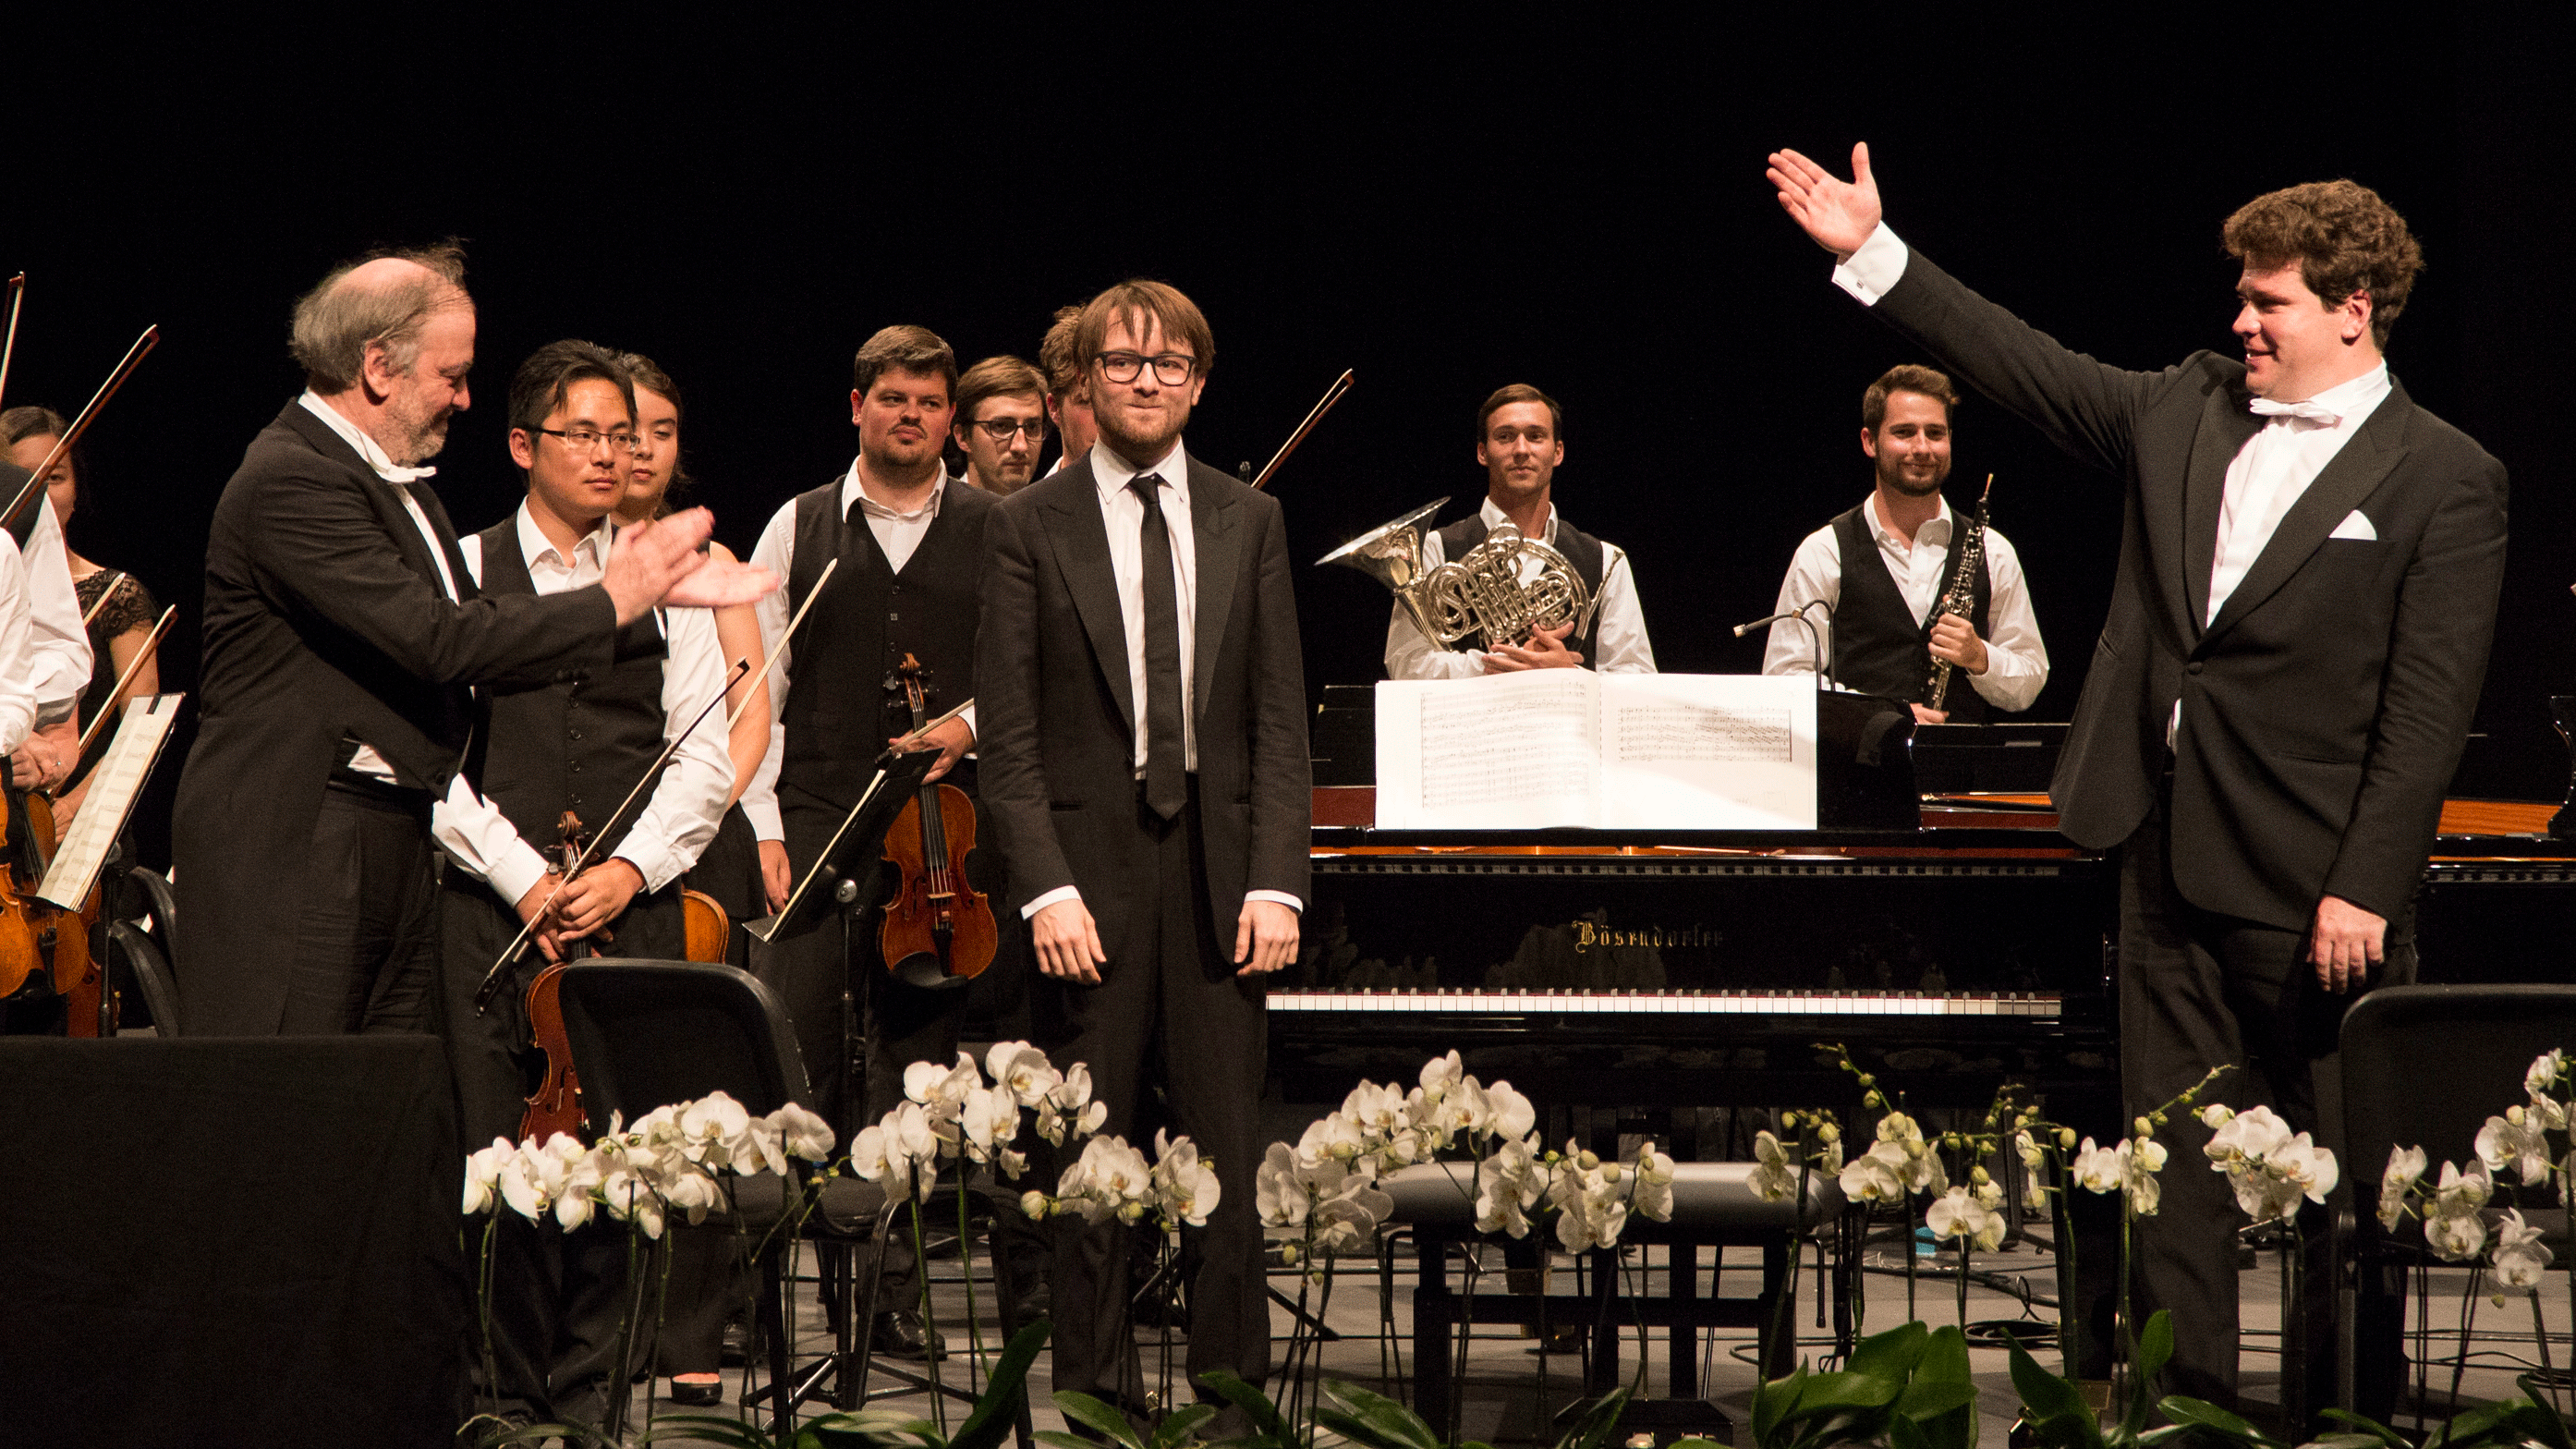 Valery Gergiev conducts Mozart and Tchaikovsky – With Denis Matsuev and Daniil Trifonov